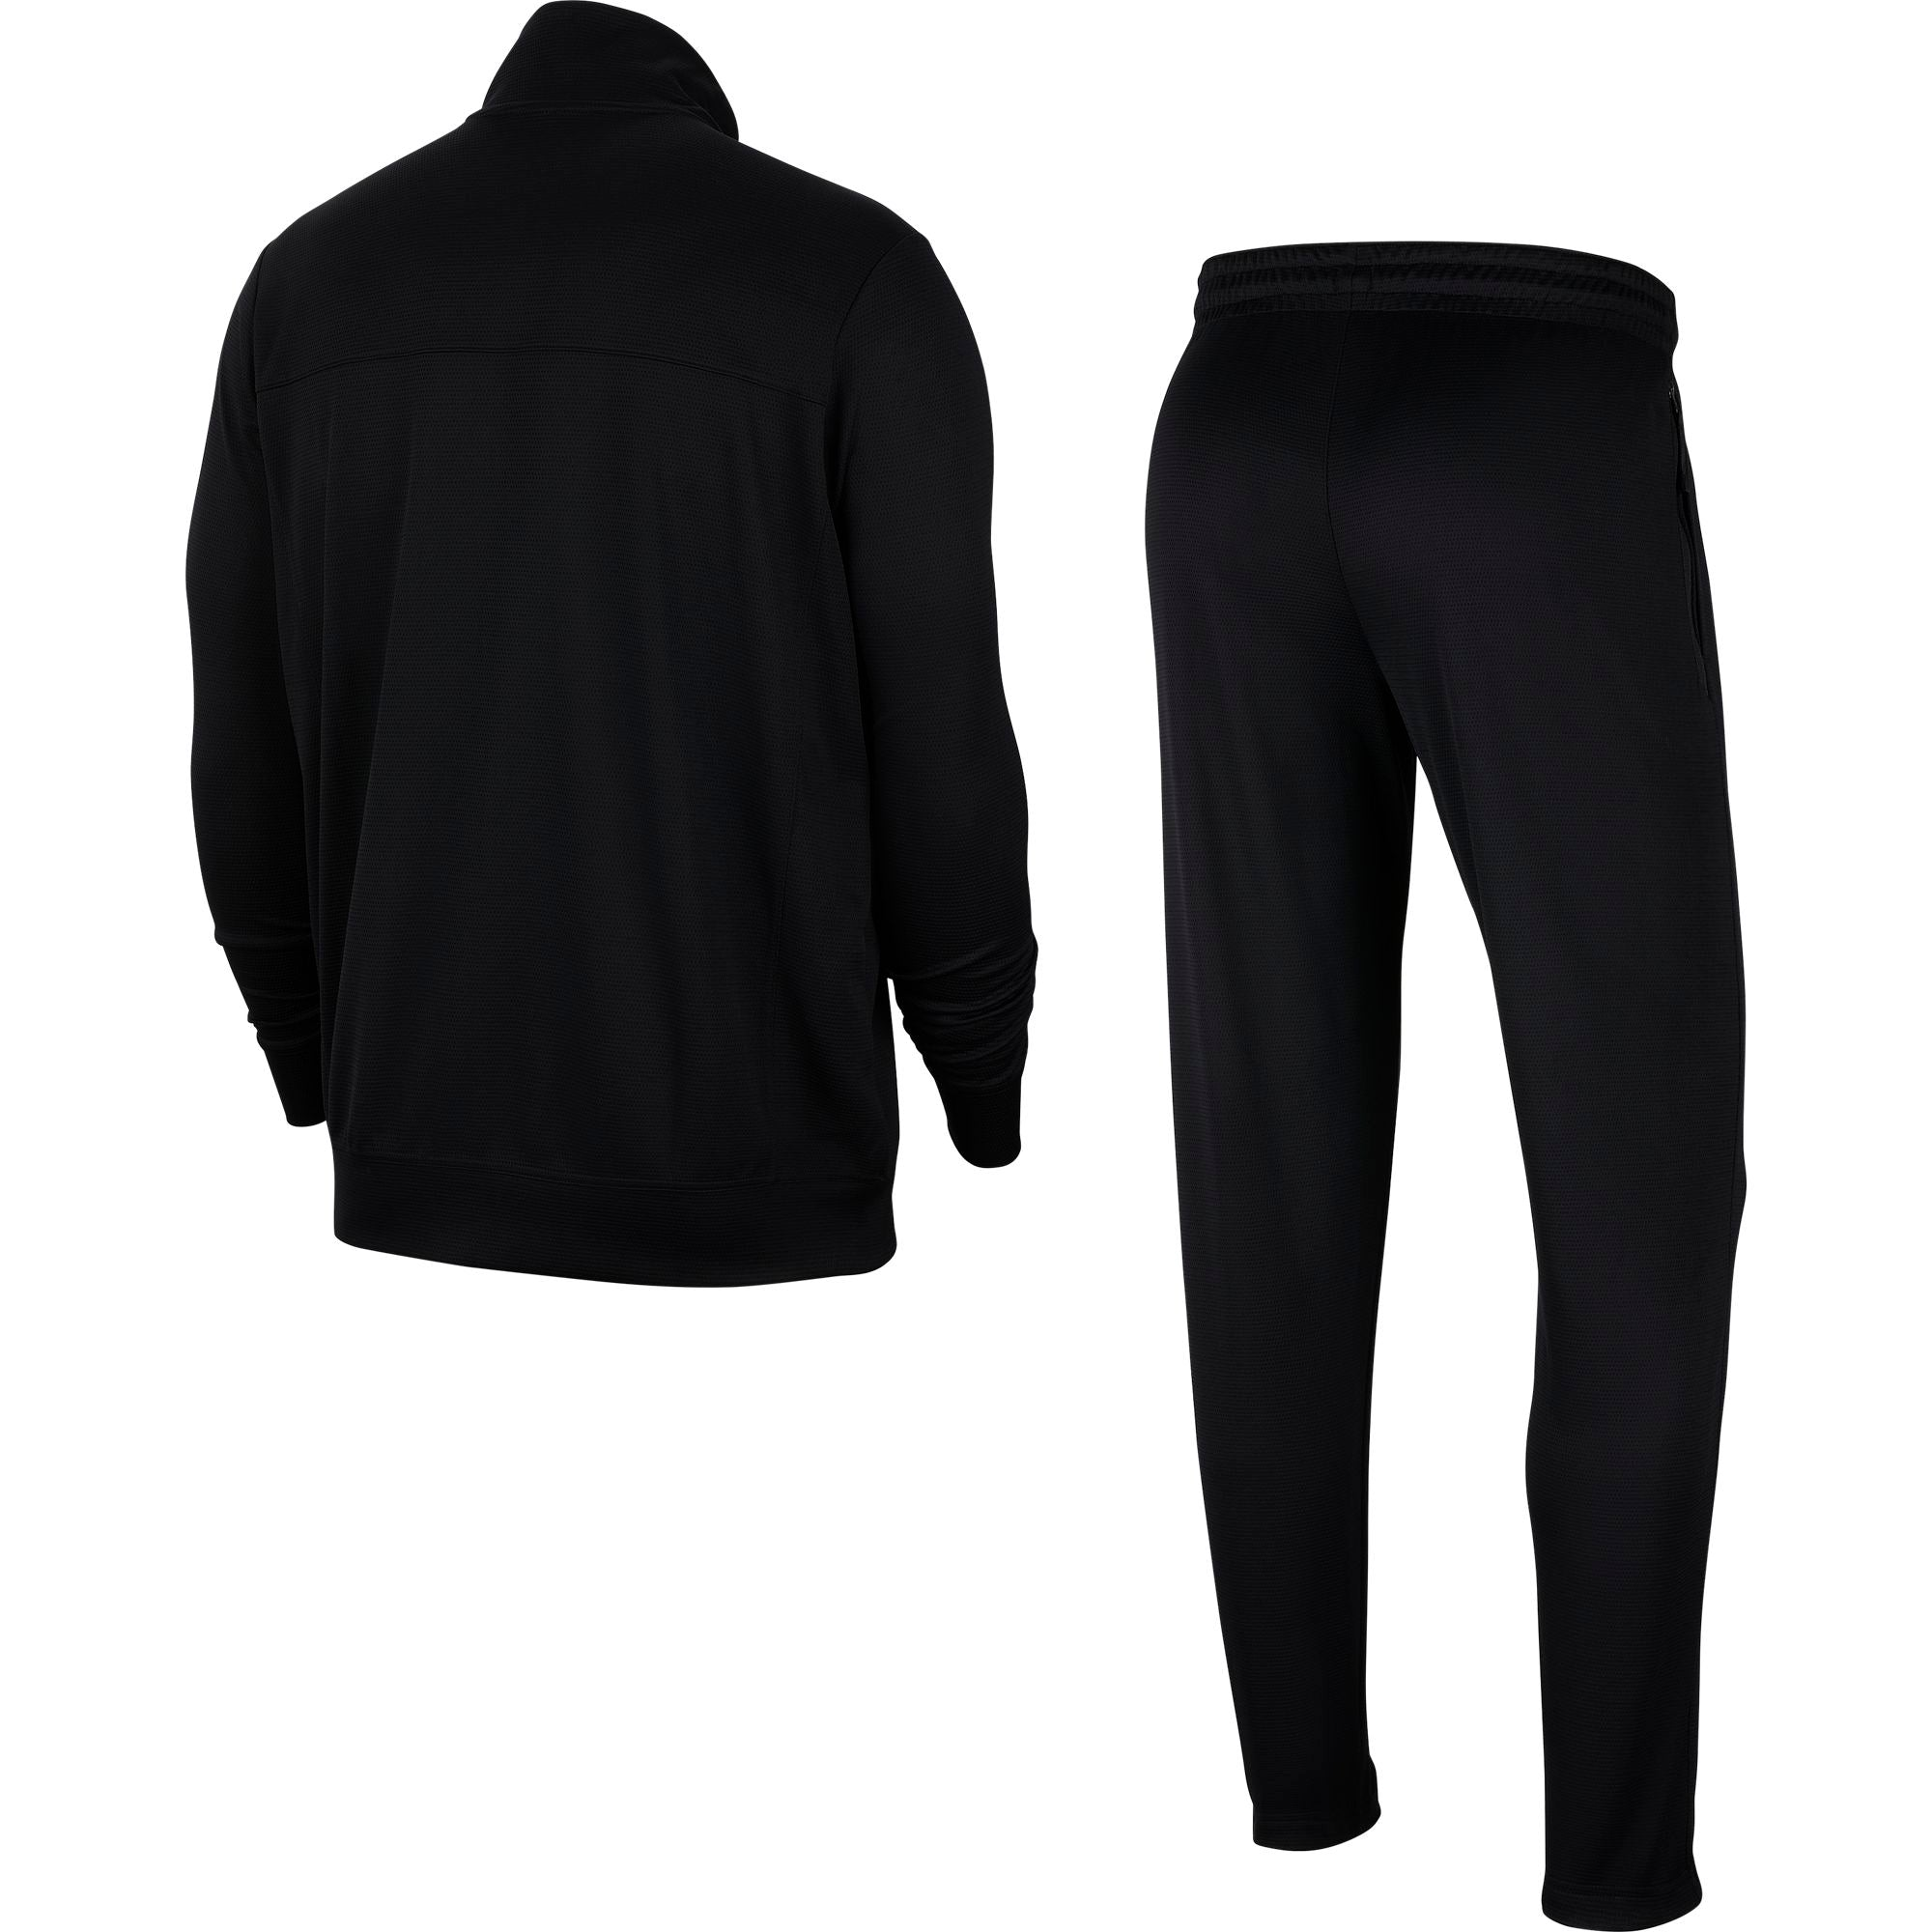 Nike Basketball Rivalry Tracksuit Jacket and Pants - Black/White